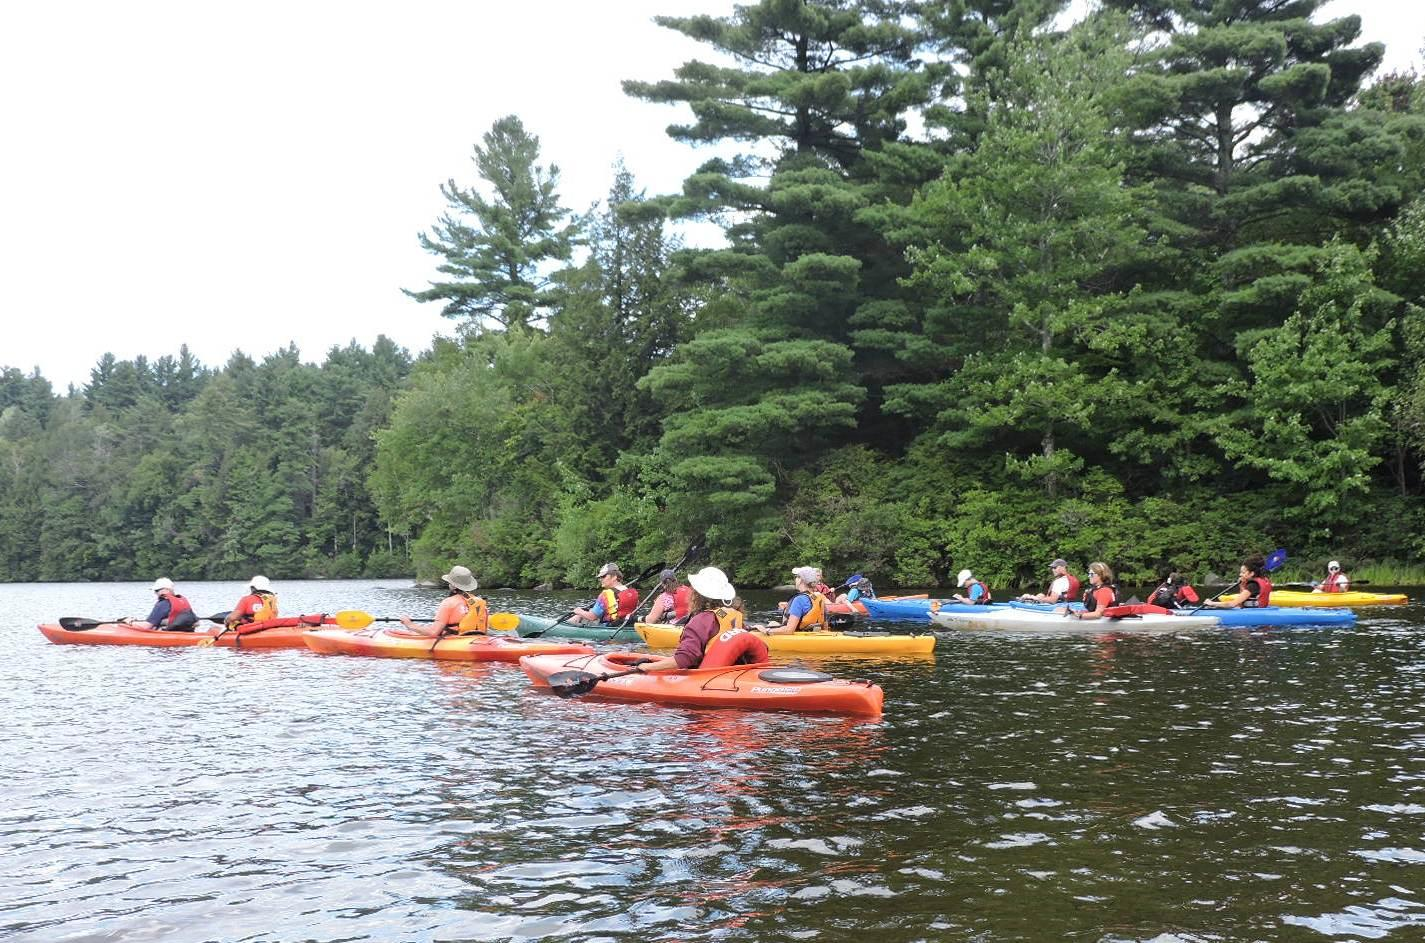 A photo of a large group of kayakers paddling close together. Some of the kayaks are single boats and some are tandem boats with two paddlers. Behind them is a wooded shoreline.